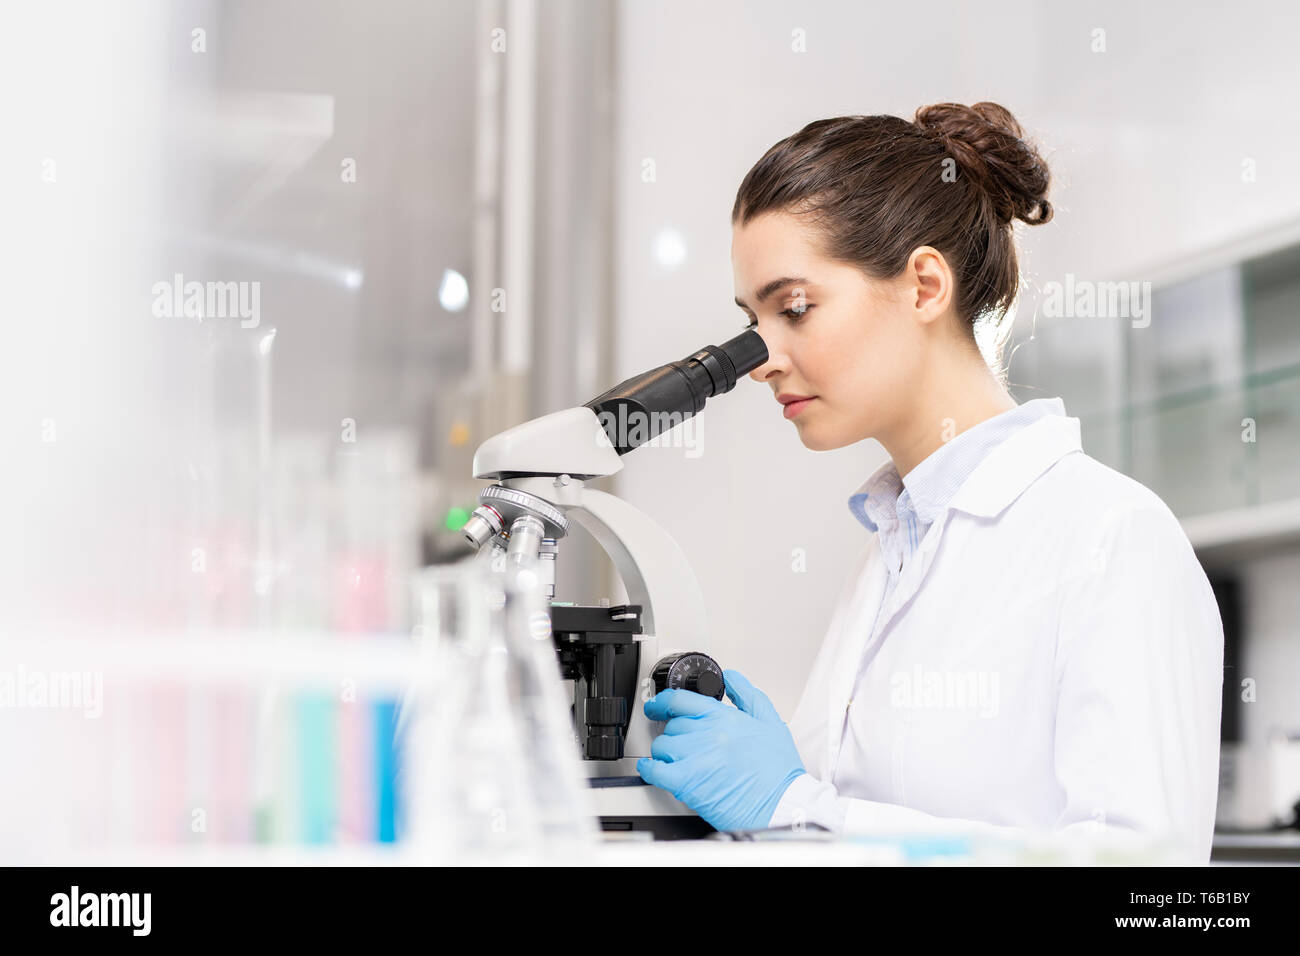 Forensic science technician analyzing evidence - Stock Image